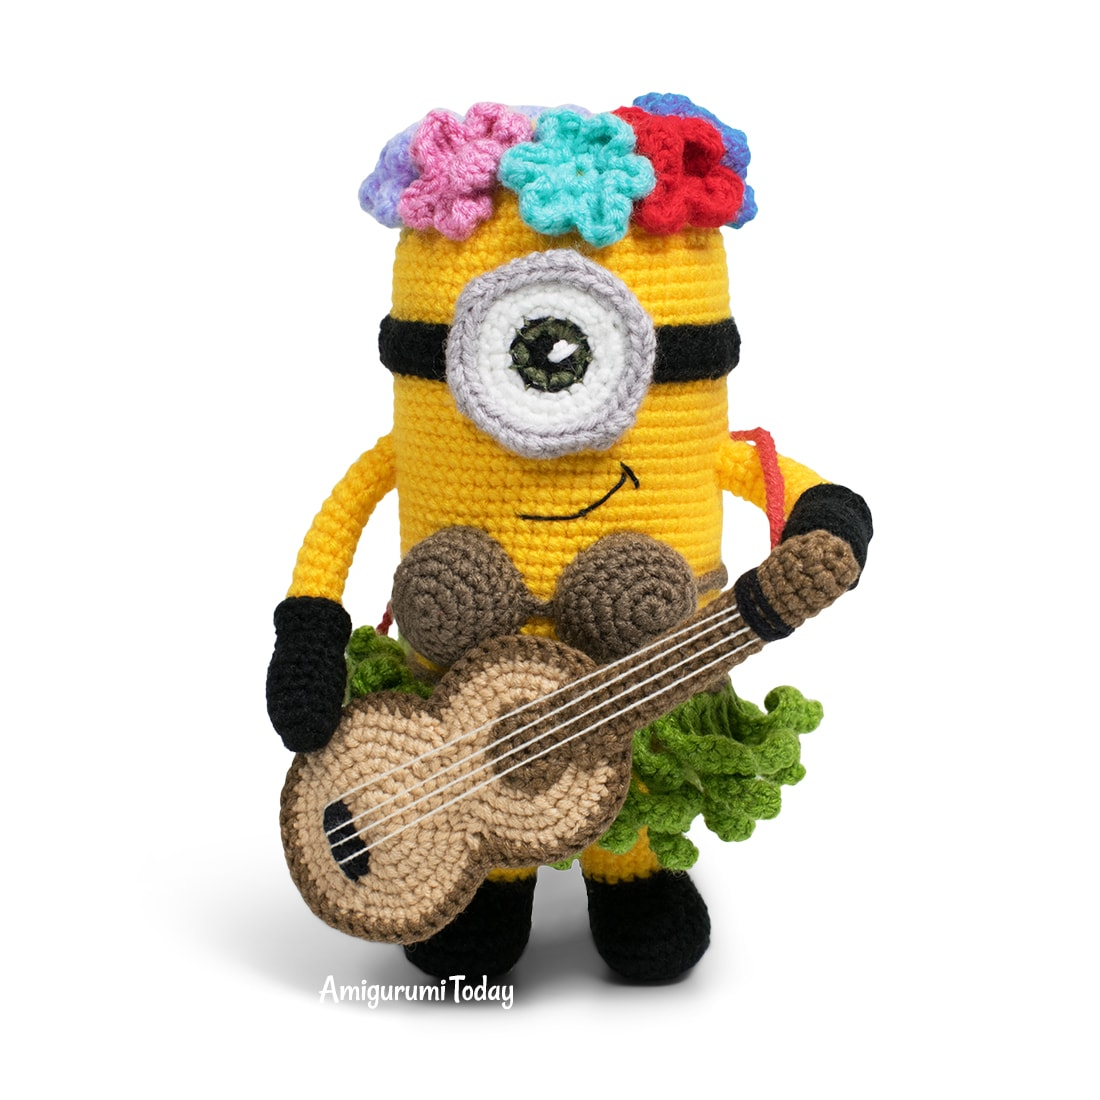 Amigurumi Hawaiian Minion Crochet Pattern by Amigurumi Today